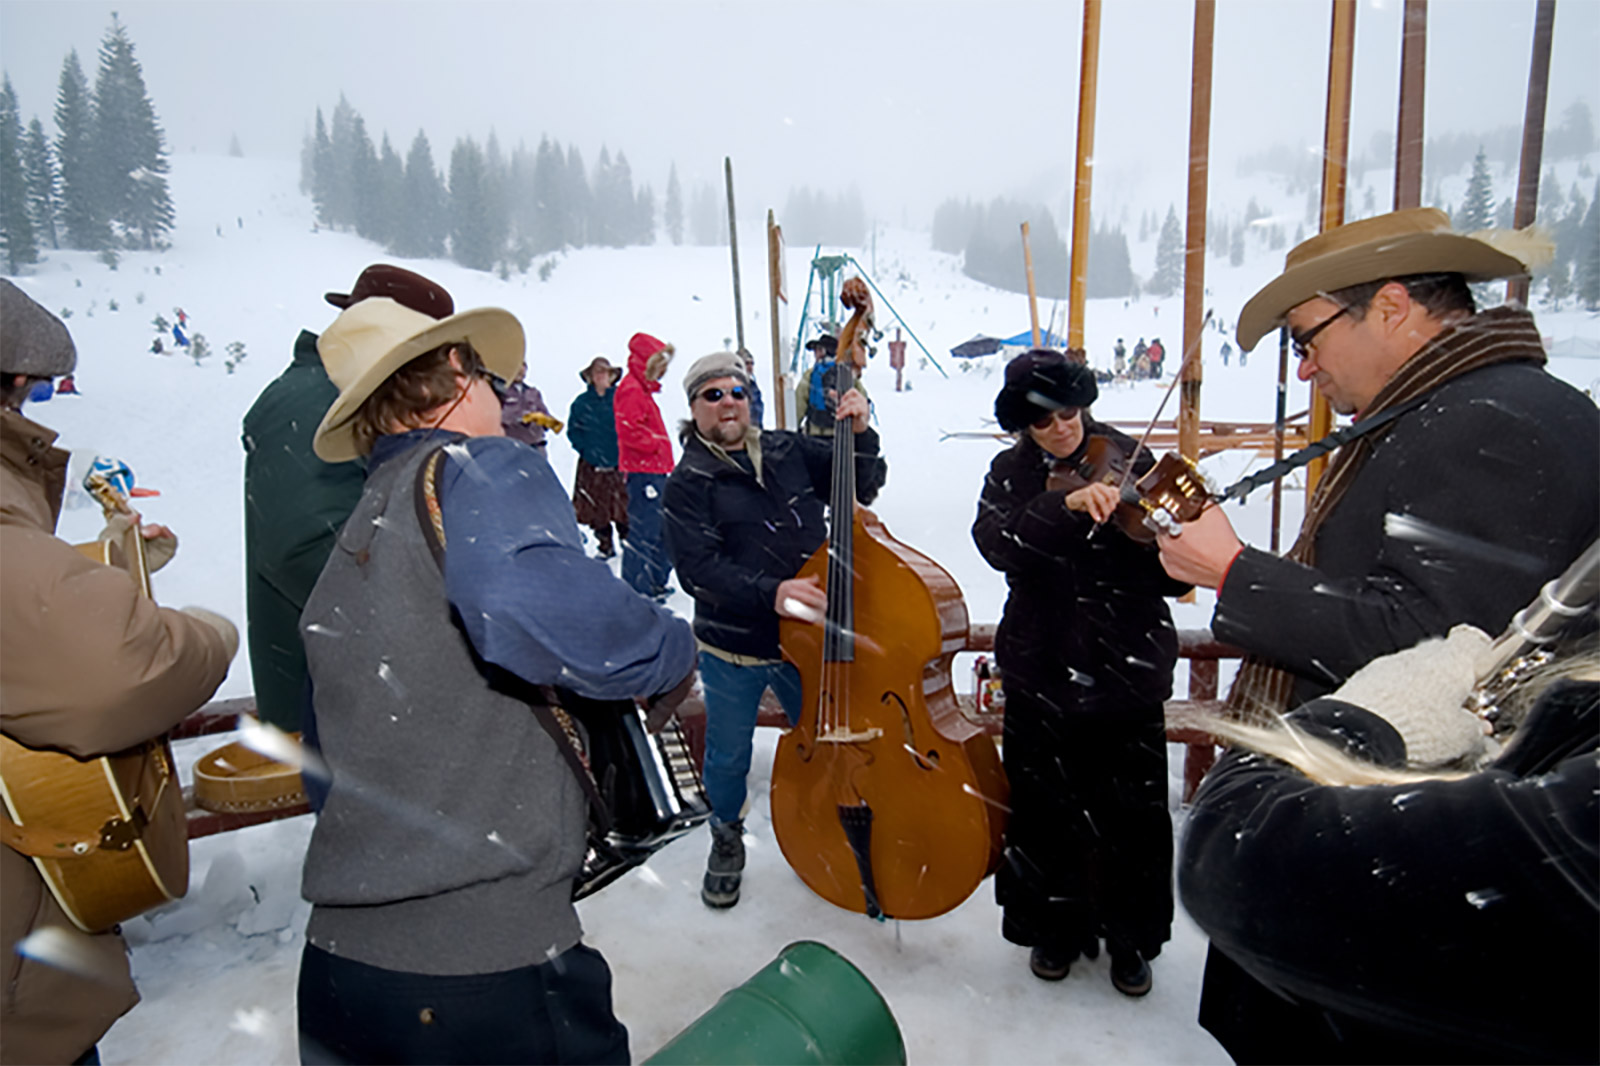 Band Performs at The Longboard Ski Races